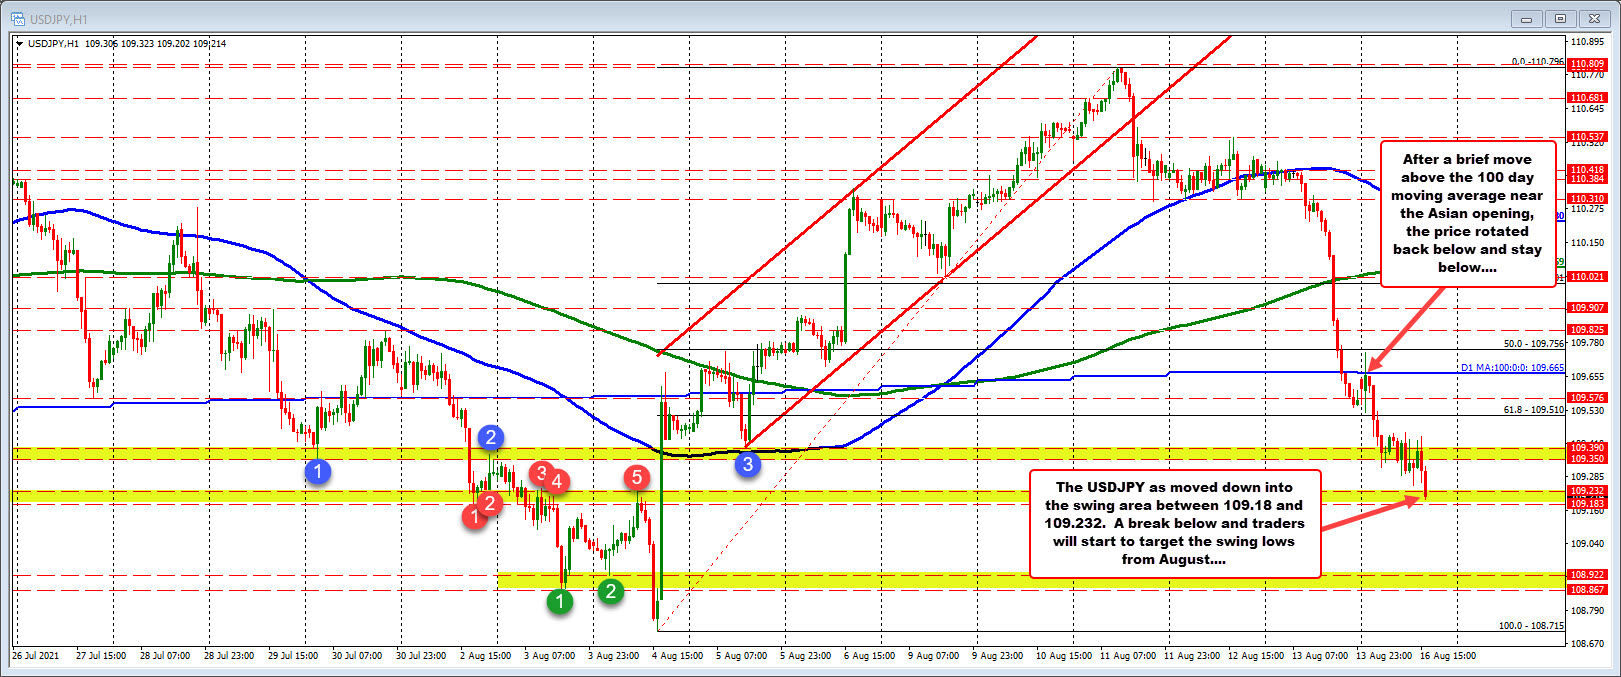 Fall in USDJPY asglobal growth concerns and flight to safety flows (?) lead pair lower